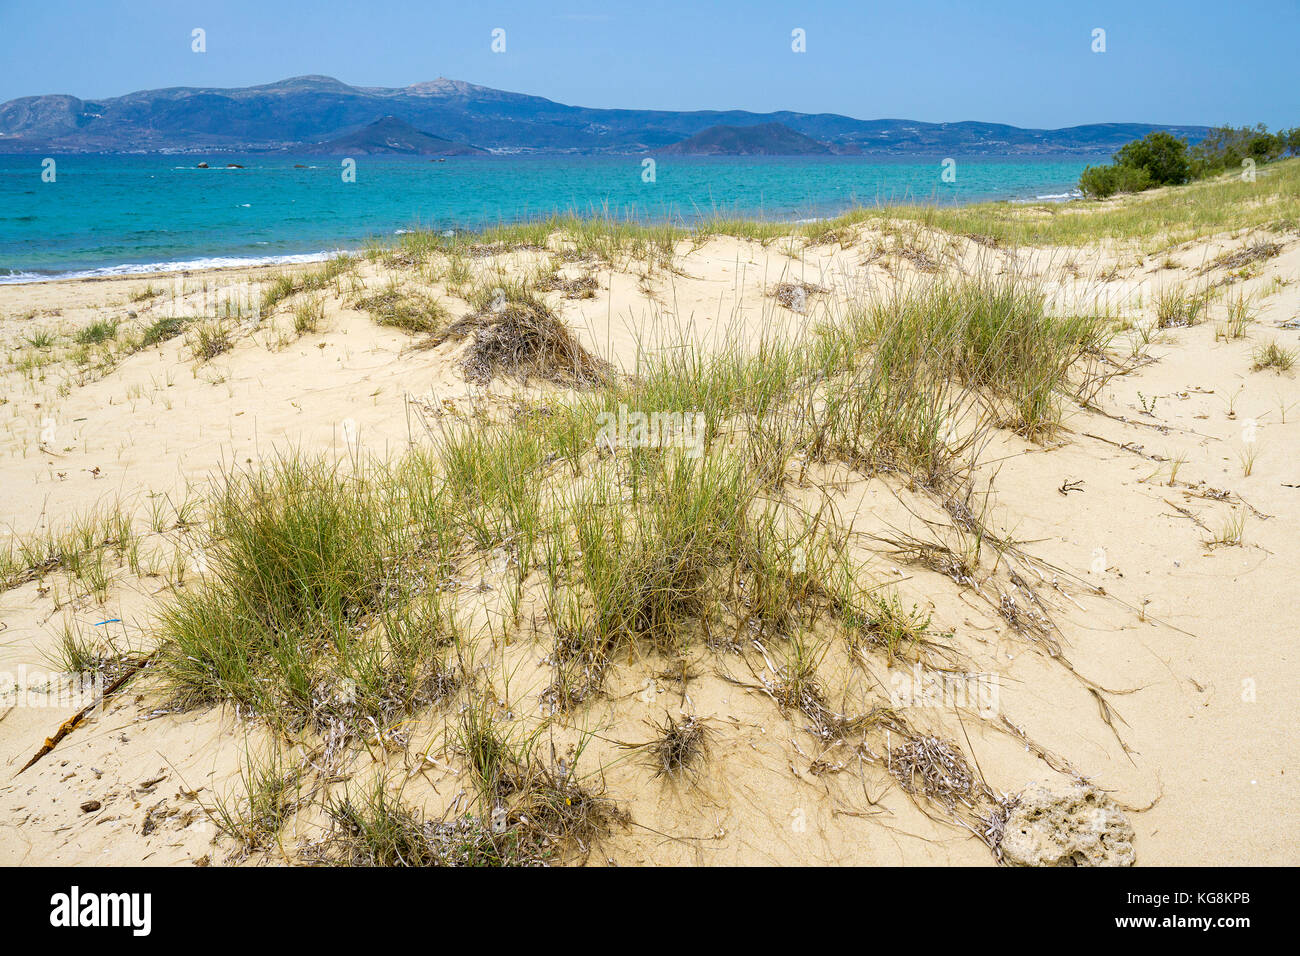 Dunes at Plaka beach, west side of Naxos, Cyclades, Aegean, Greece - Stock Image